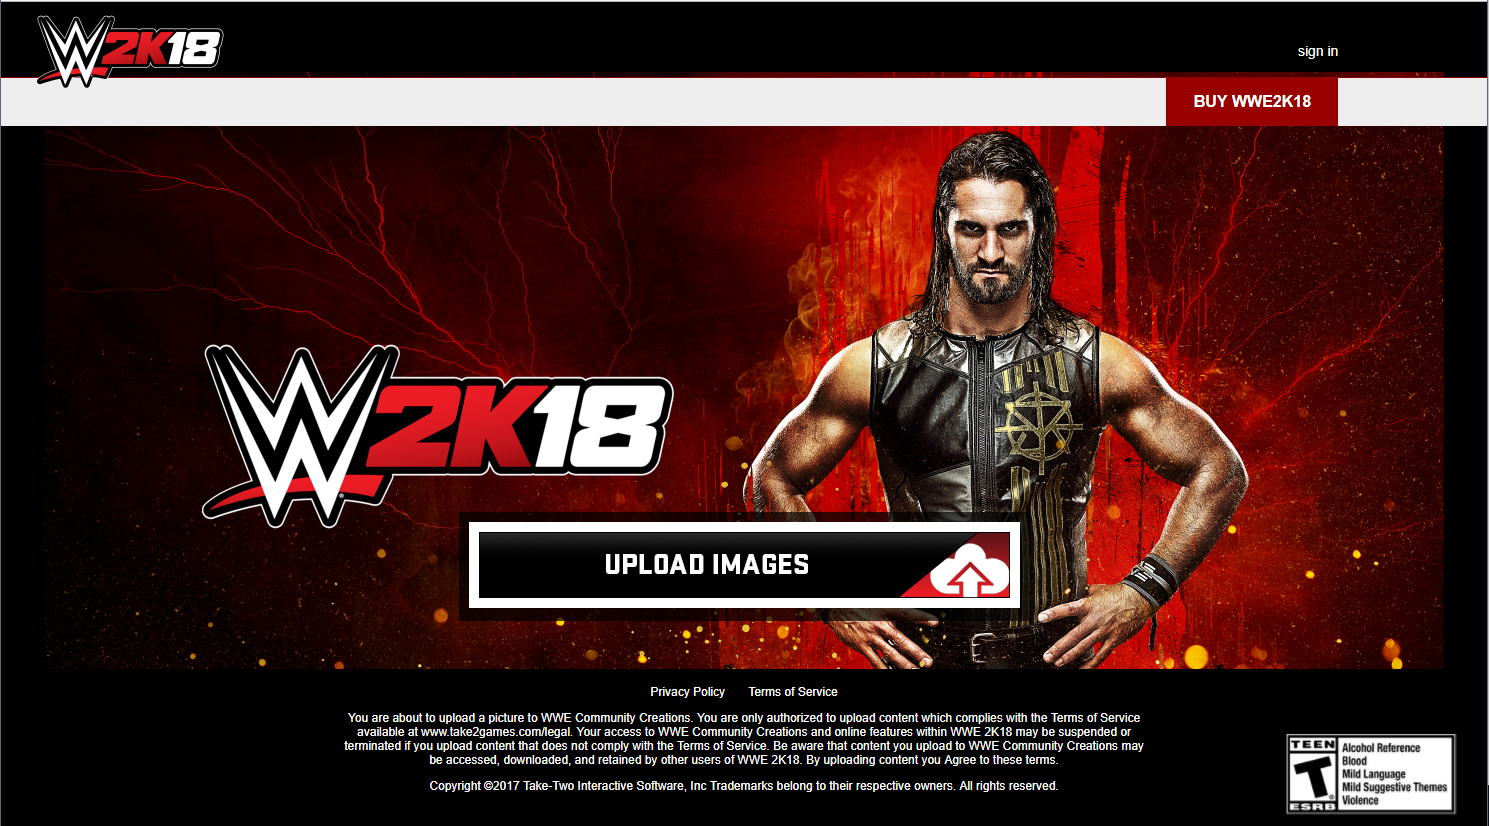 WWE 2k18 Logo Uploader site is live and confirms the Switch.